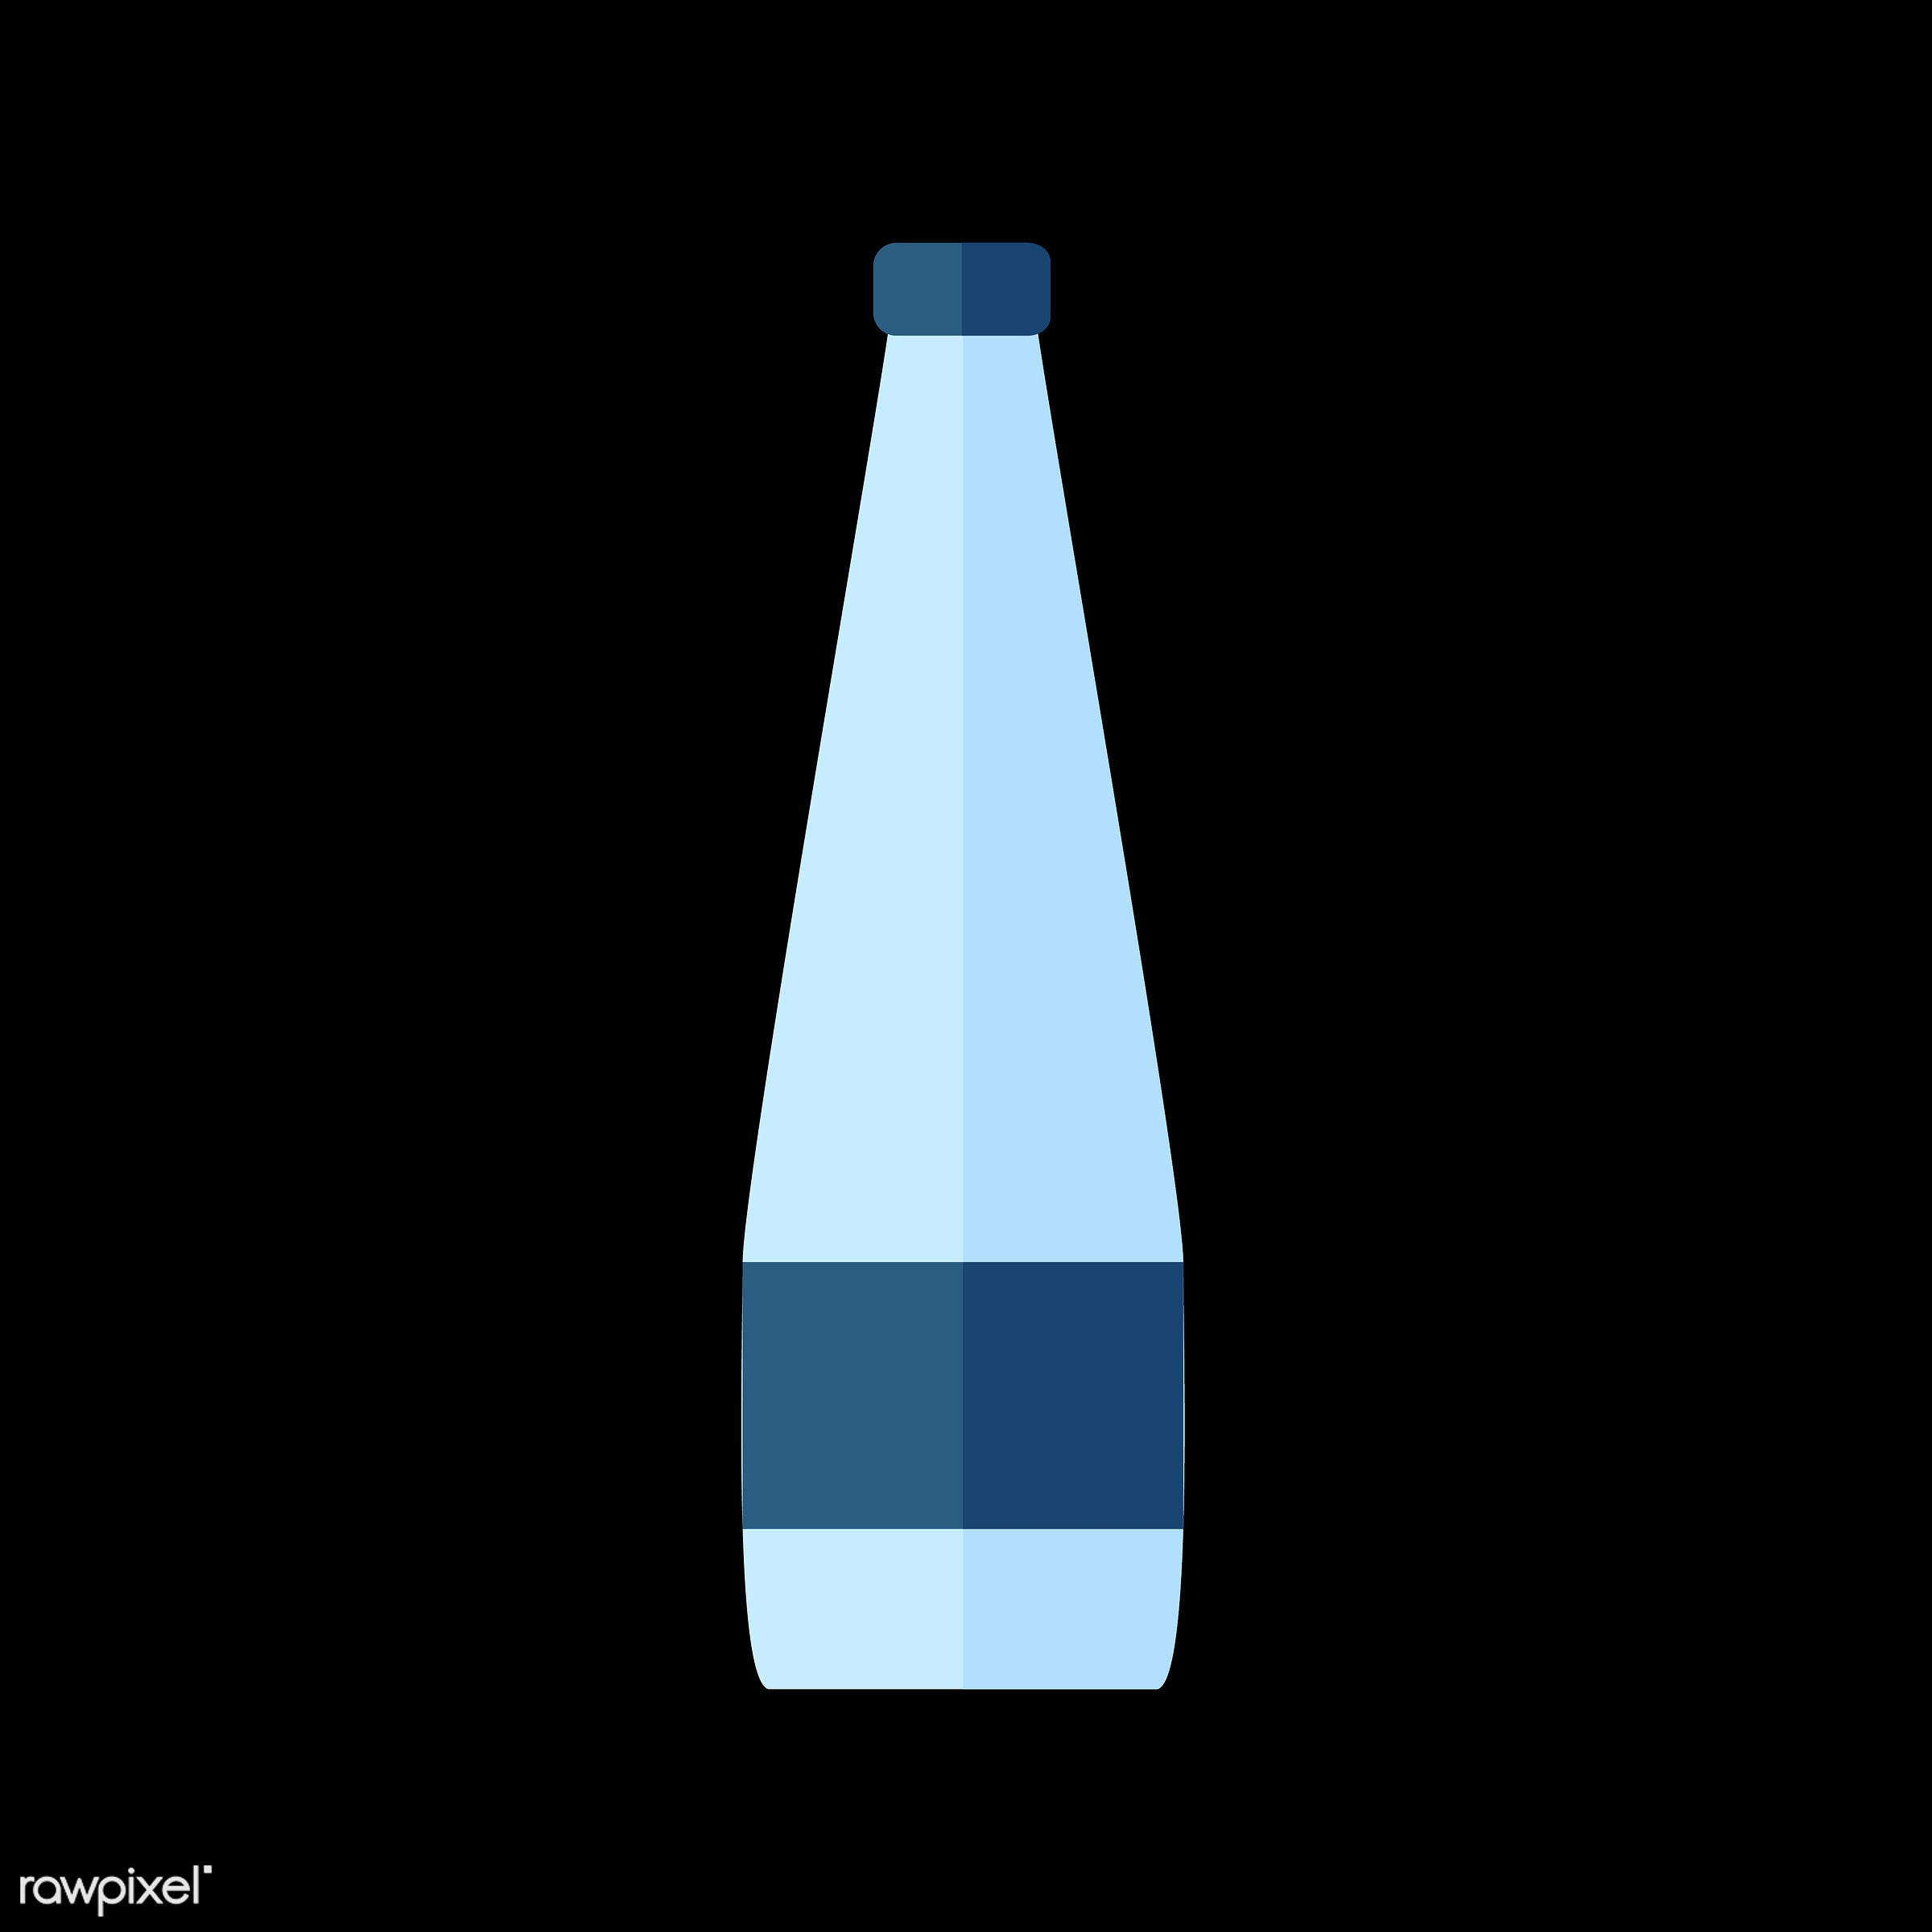 vector, graphic, illustration, icon, symbol, colorful, cute, drink, beverage, water, blue, water bottle, plastic bottle